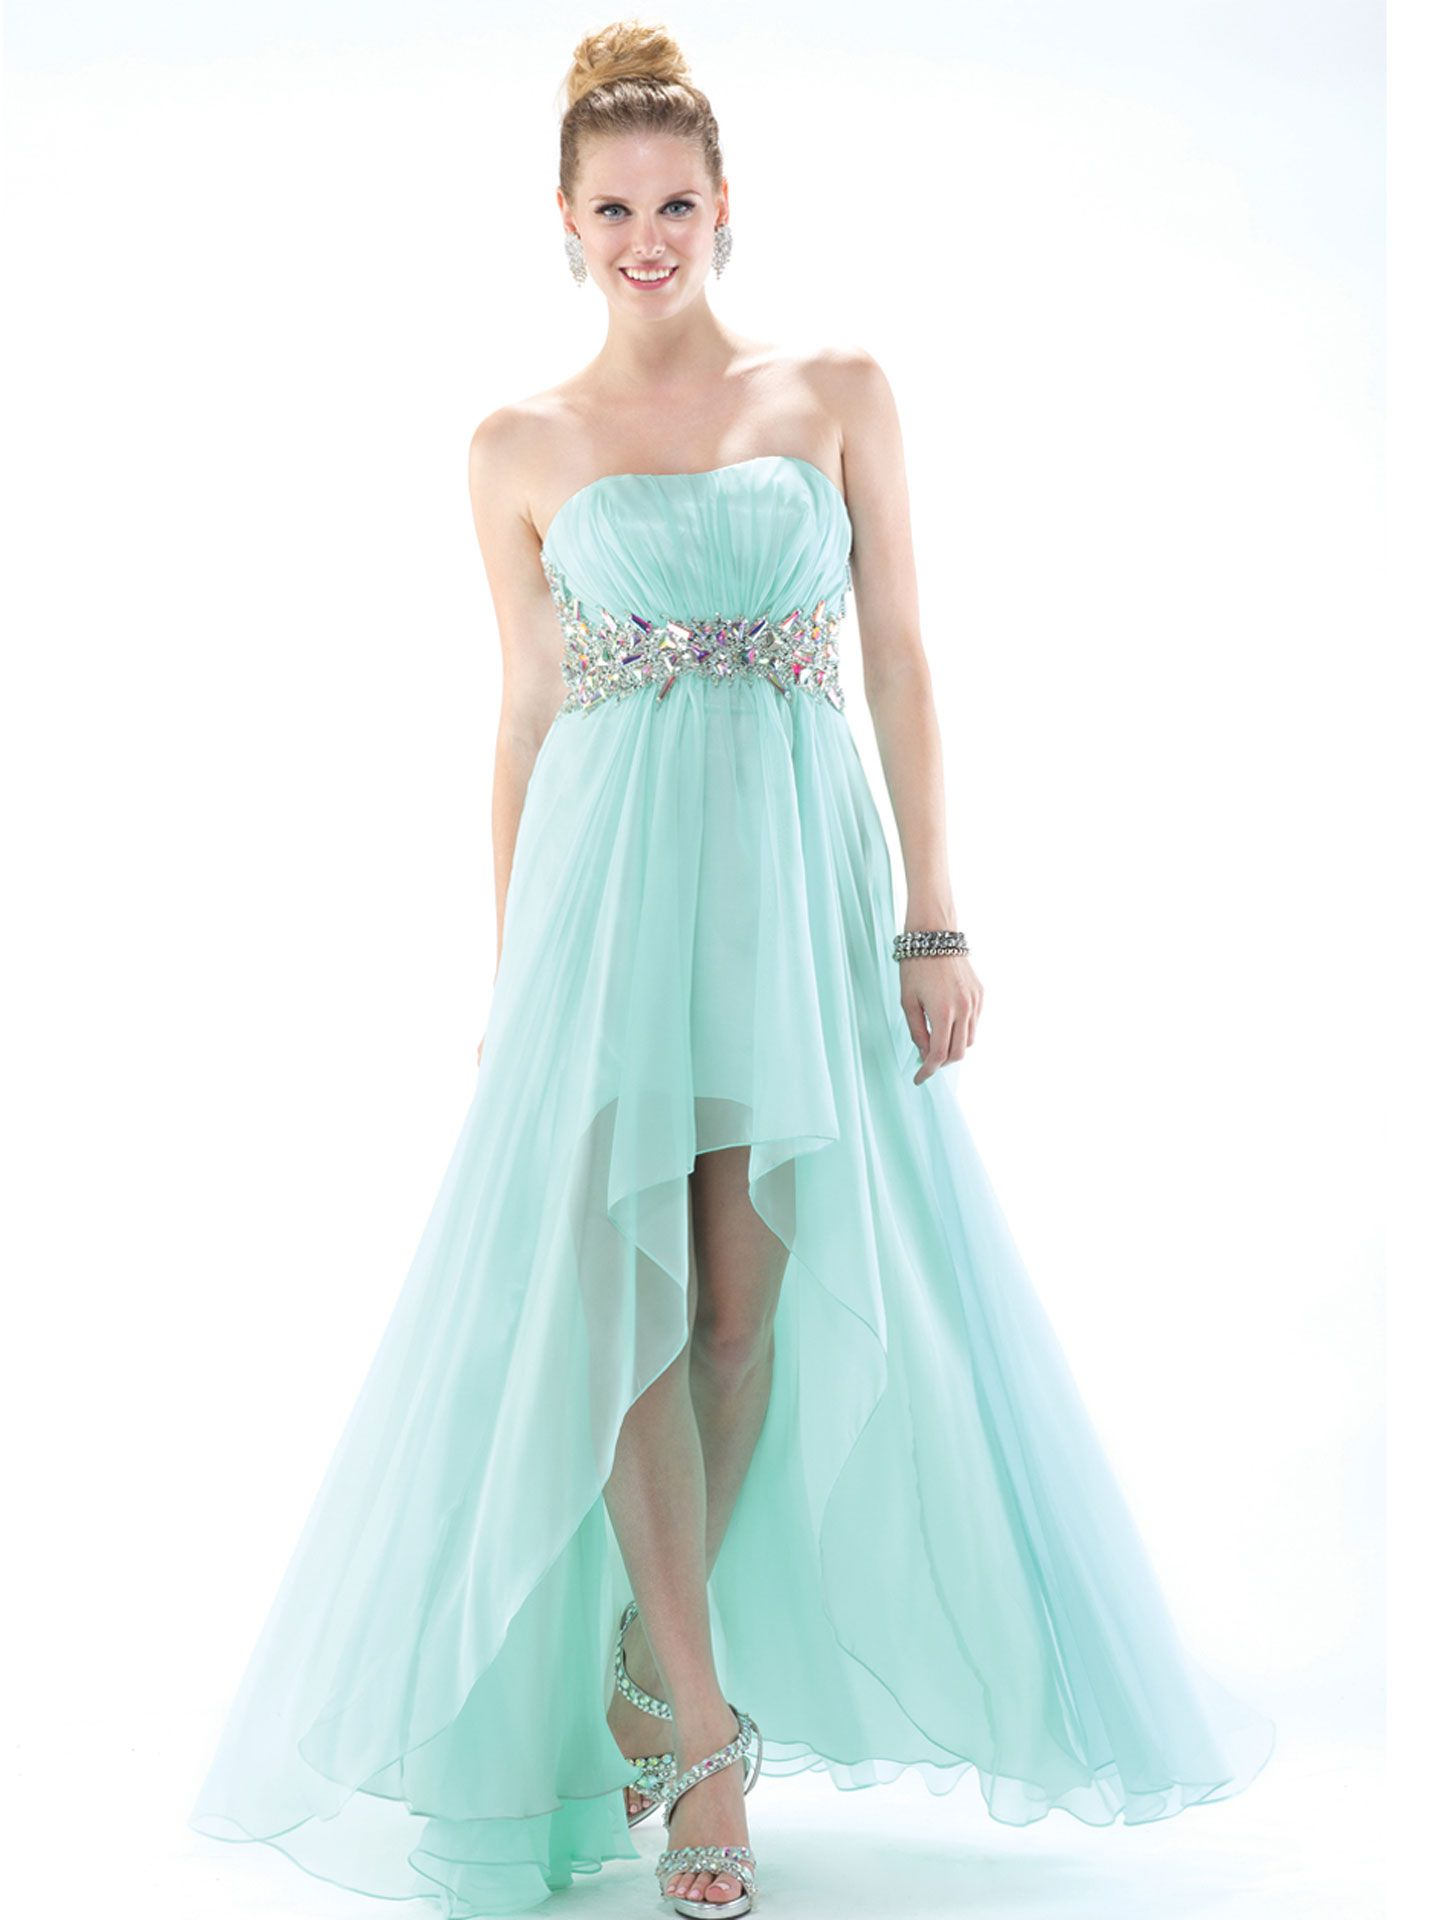 64cf87d856aeb Green Prom Dresses - Prom Dress Trends 2014